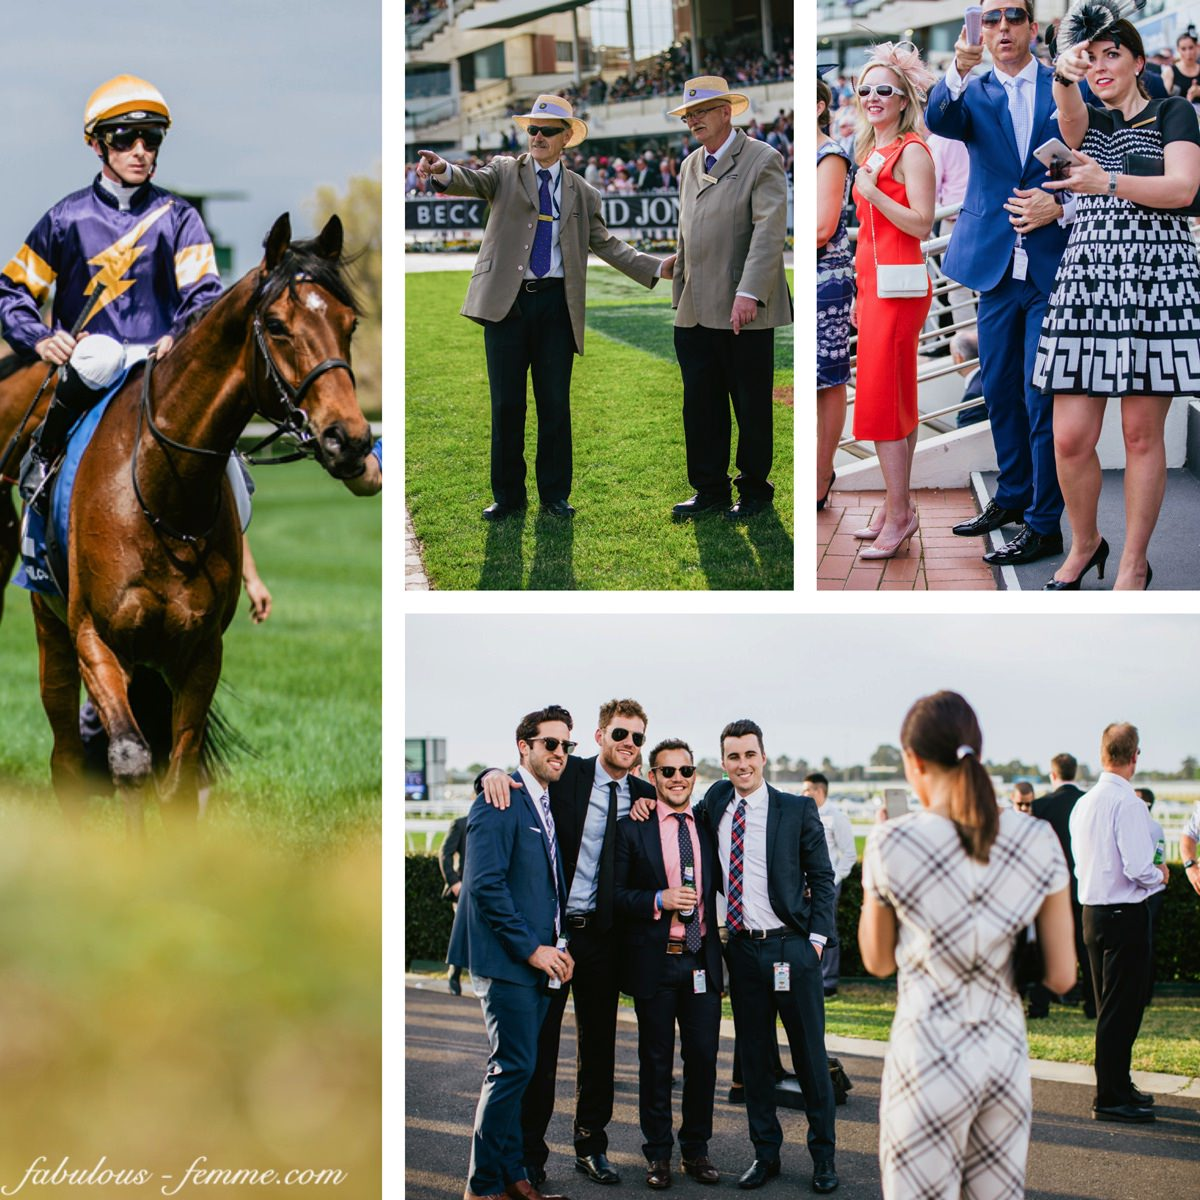 spring racing in style - tips for everyone